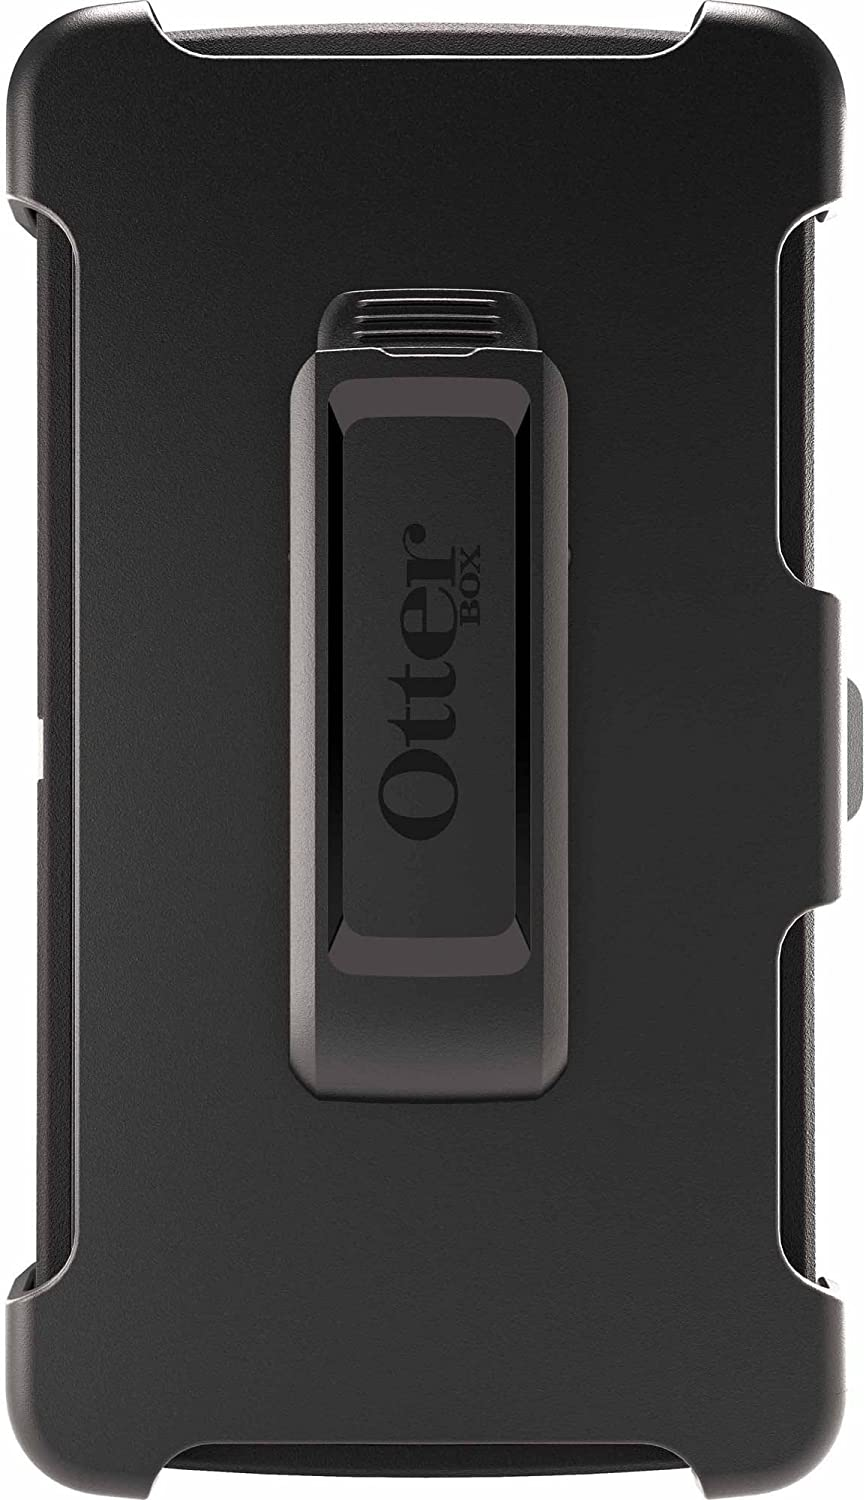 Otterbox Defender Series Replacement Belt Clip Holster for LG G4